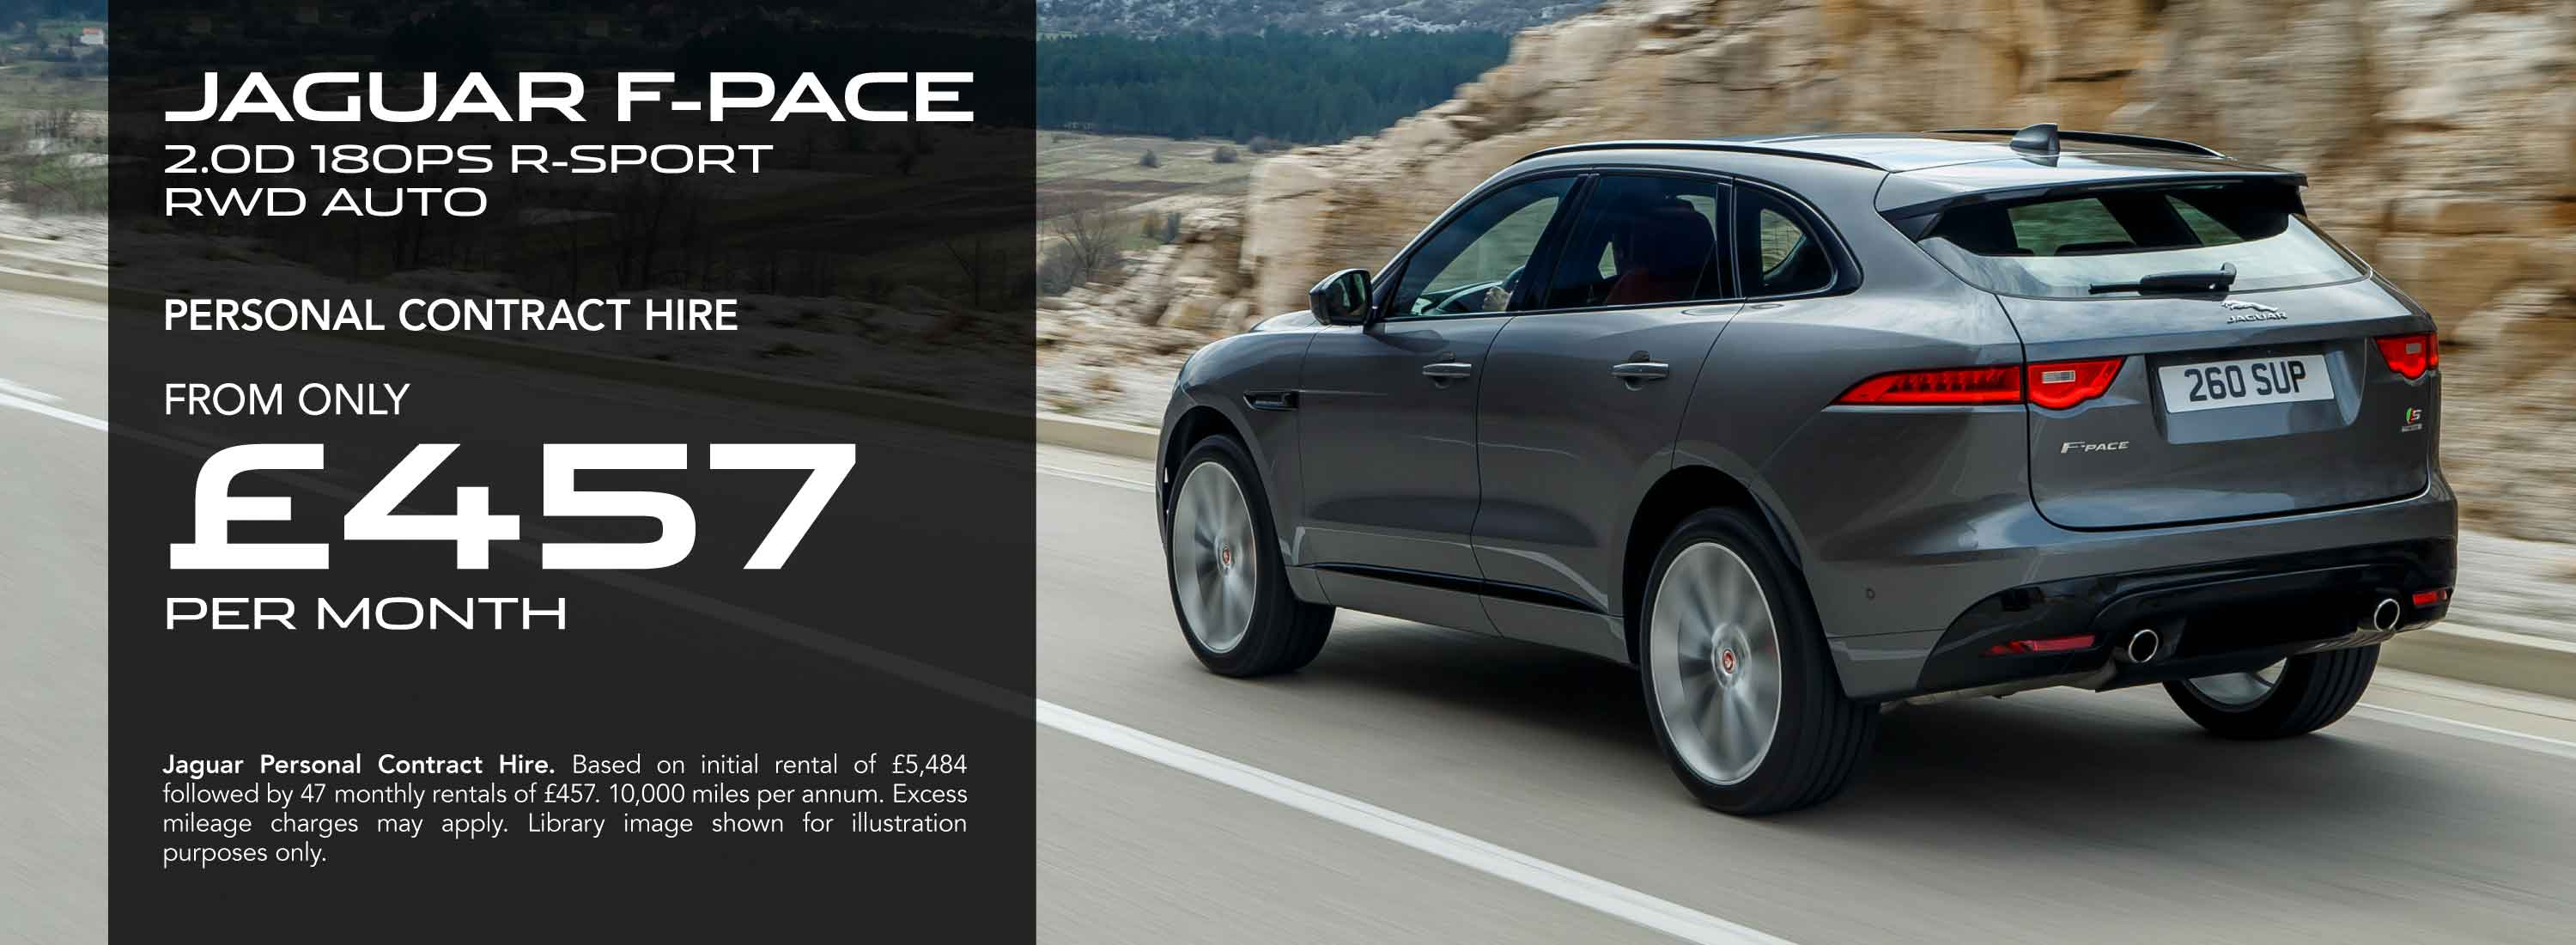 Jaguar F-Pace Personal Contract Hire Offer